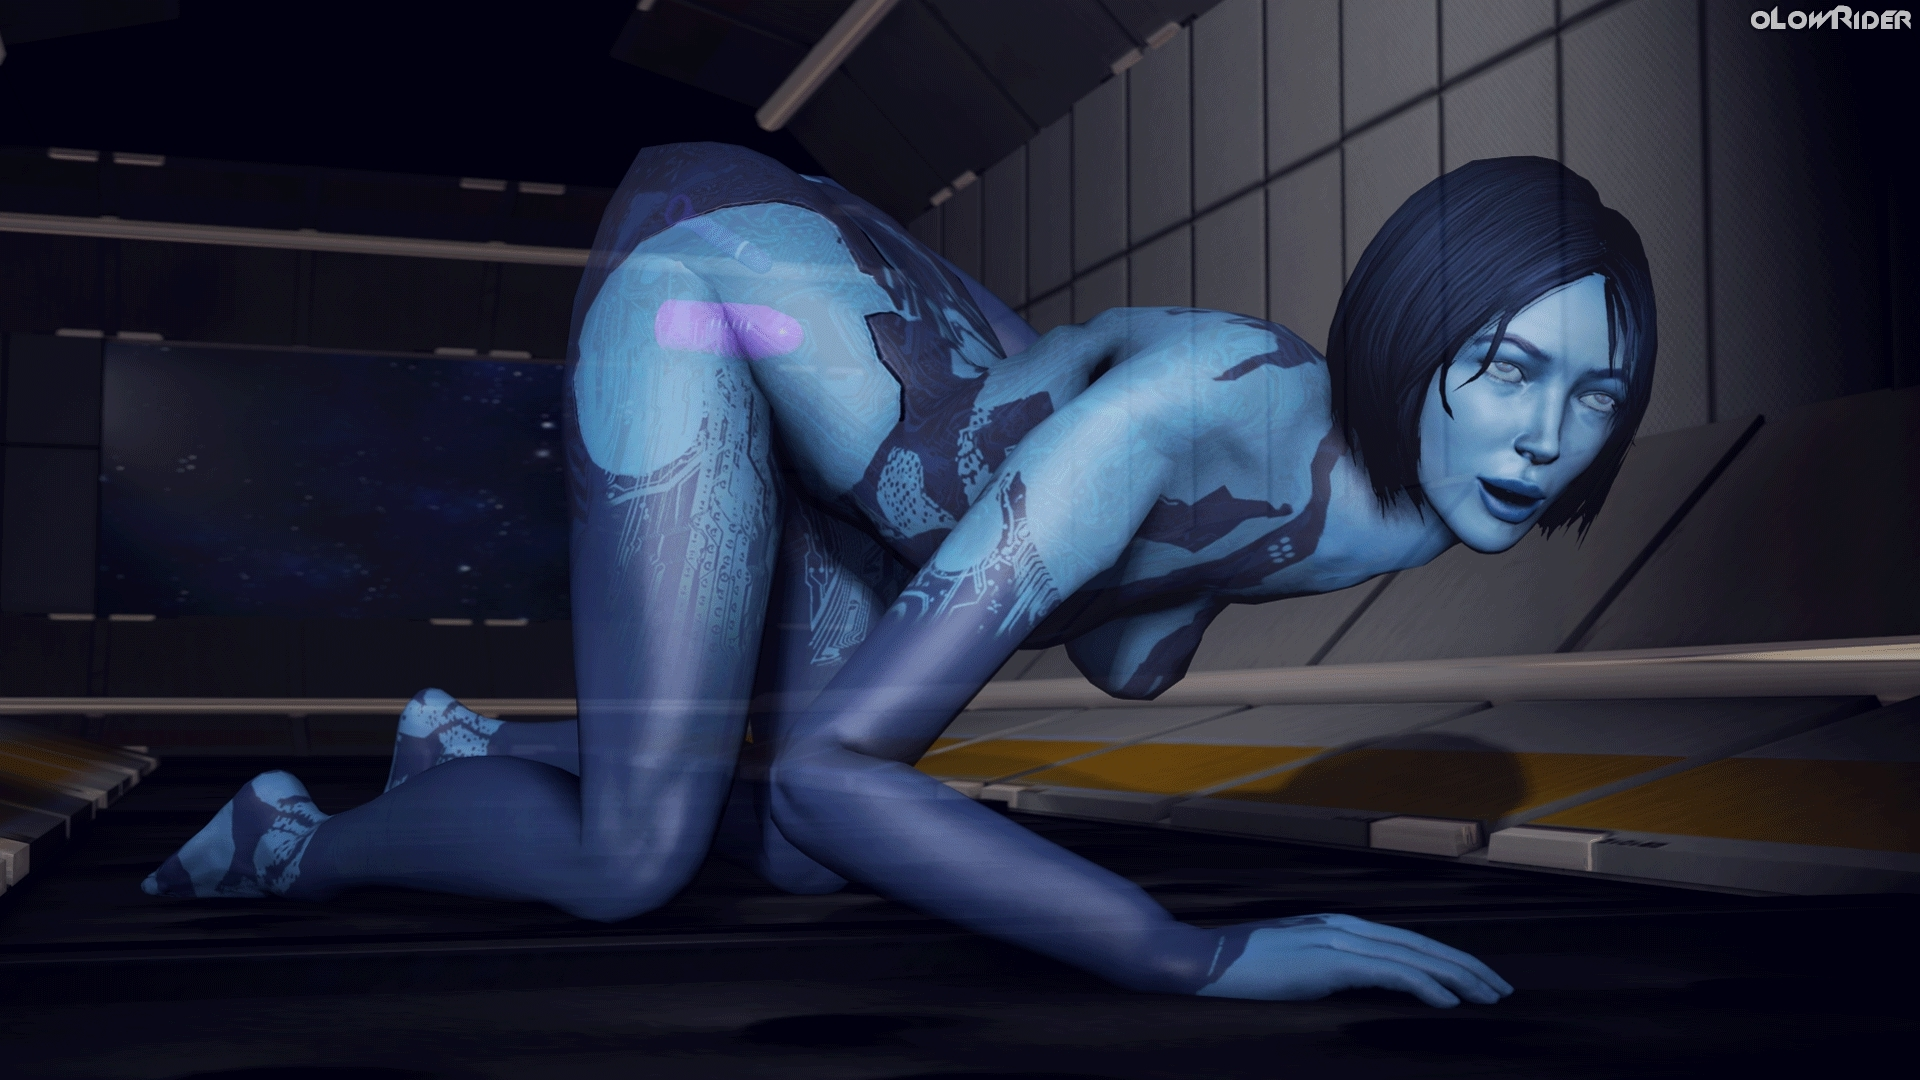 Cortana xxx vids porncraft thumbs